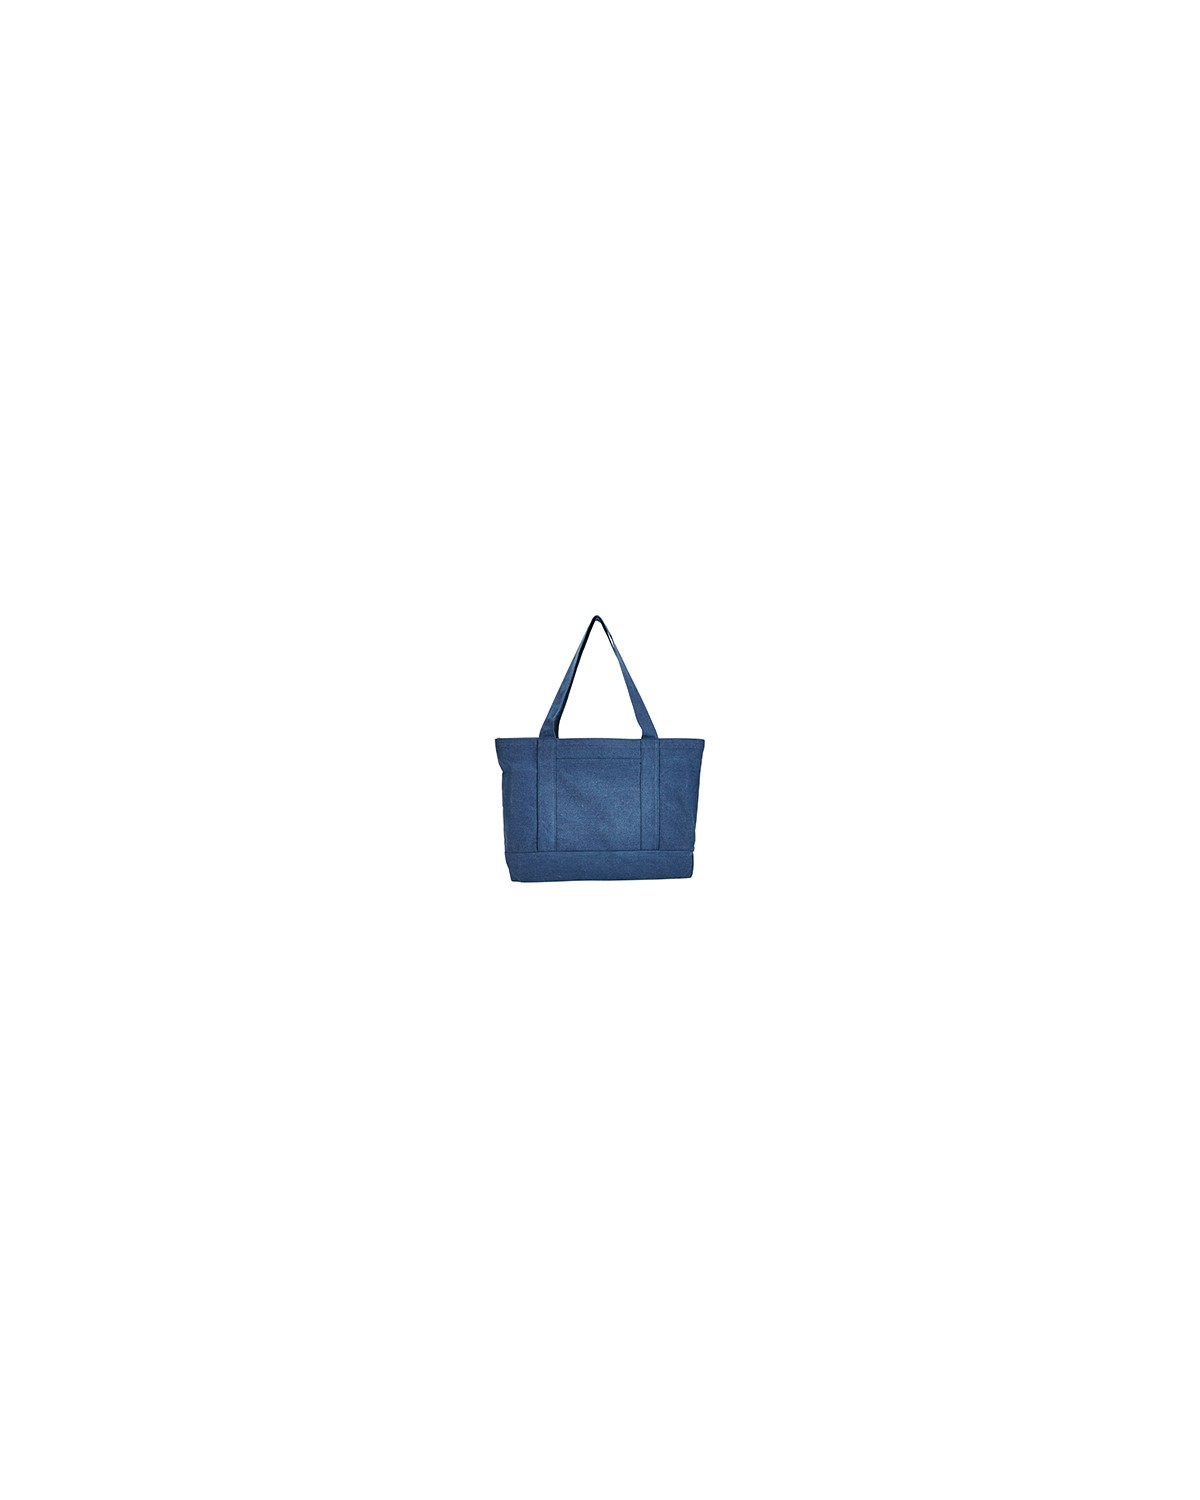 8870 Liberty Bags WASHED NAVY